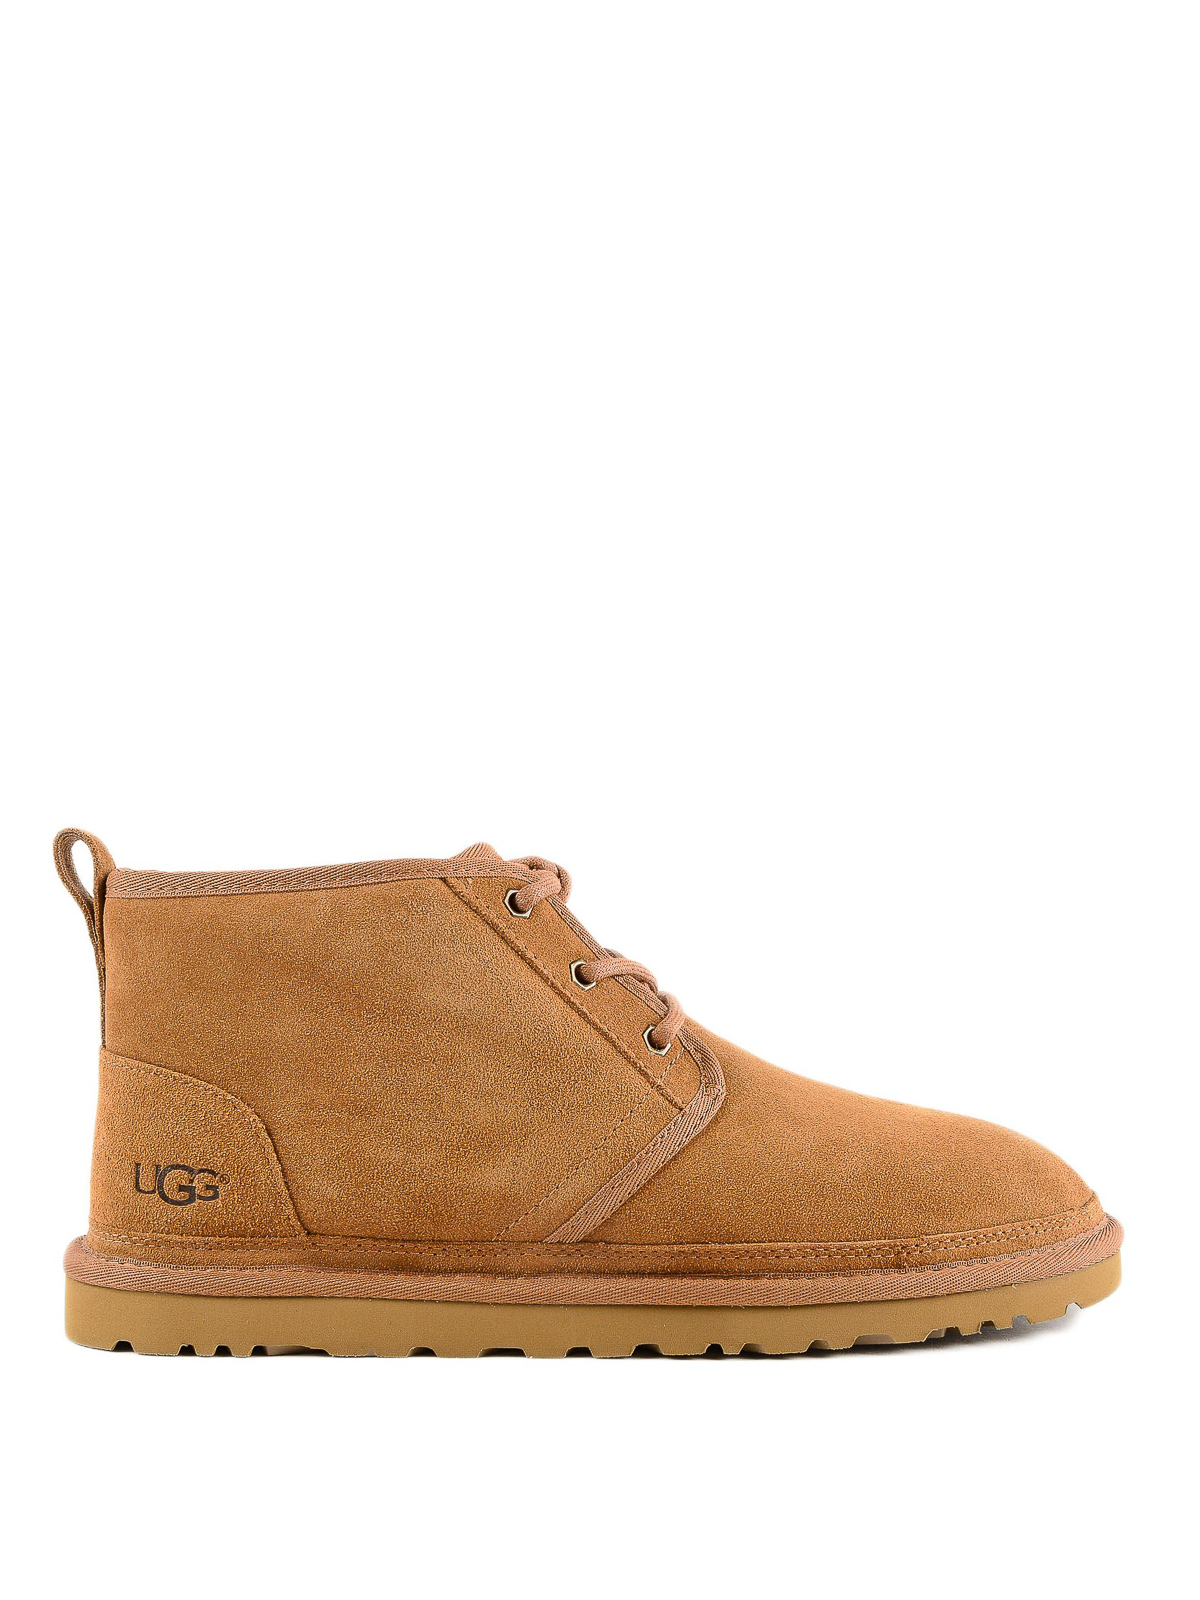 001683b0145 Ugg - Logo detail suede soft lace-up ankle boots - ankle boots ...